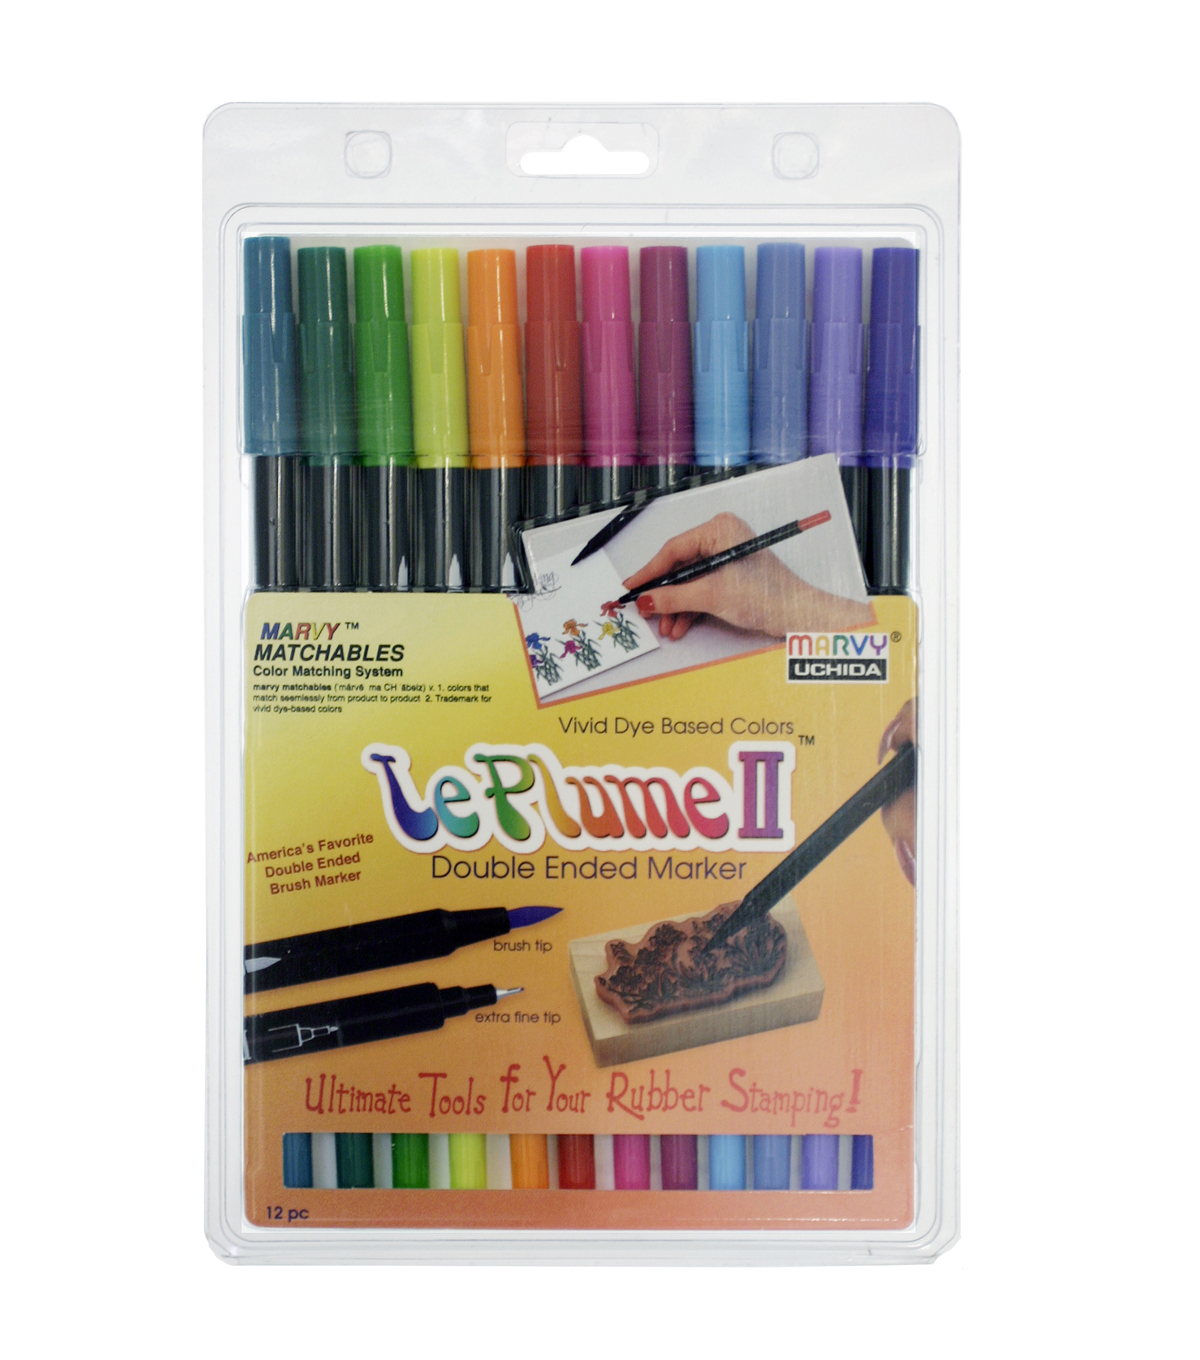 Marvy Uchida Le Plume II Pack of 12 Watercolor Marker Set-Bright